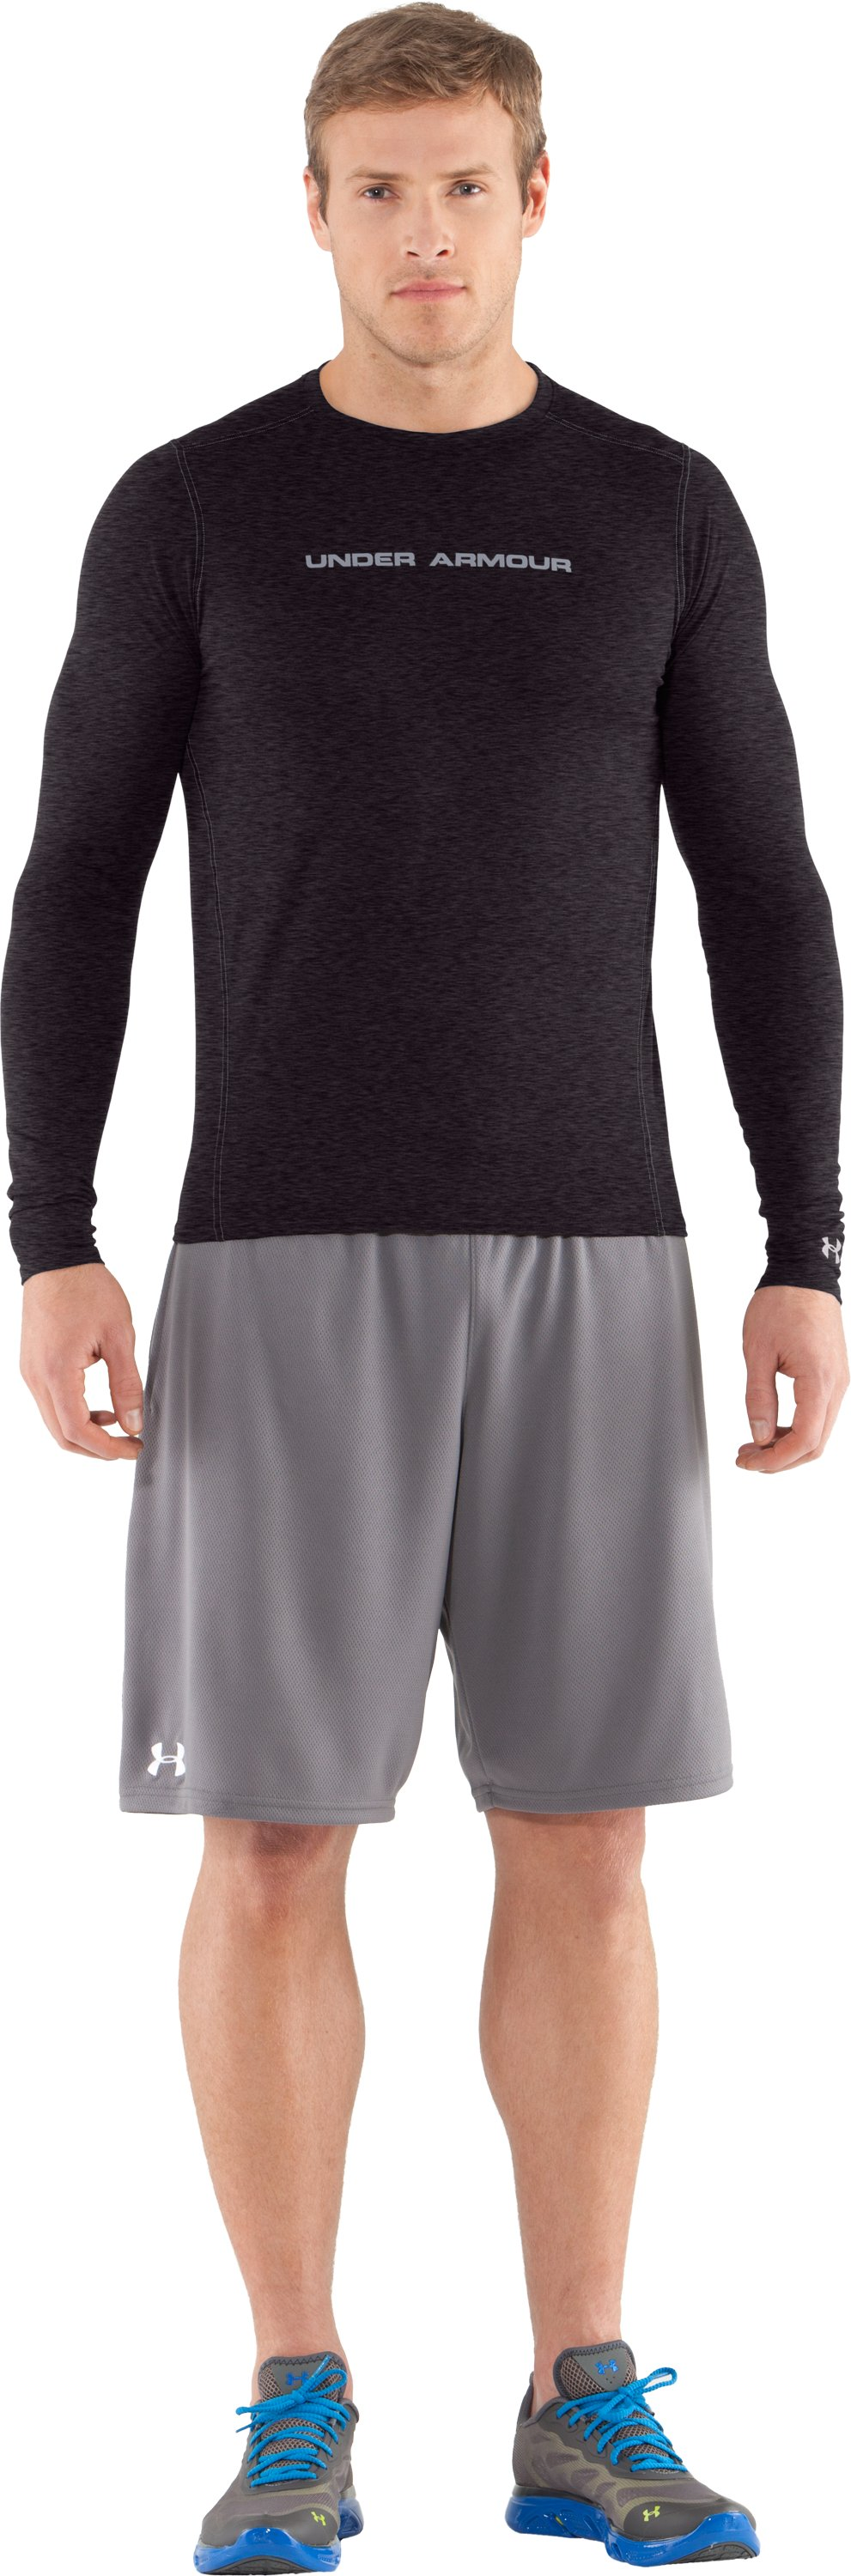 Men's UA HeatGear® Touch Fitted Long Sleeve Crew, Carbon Heather, zoomed image